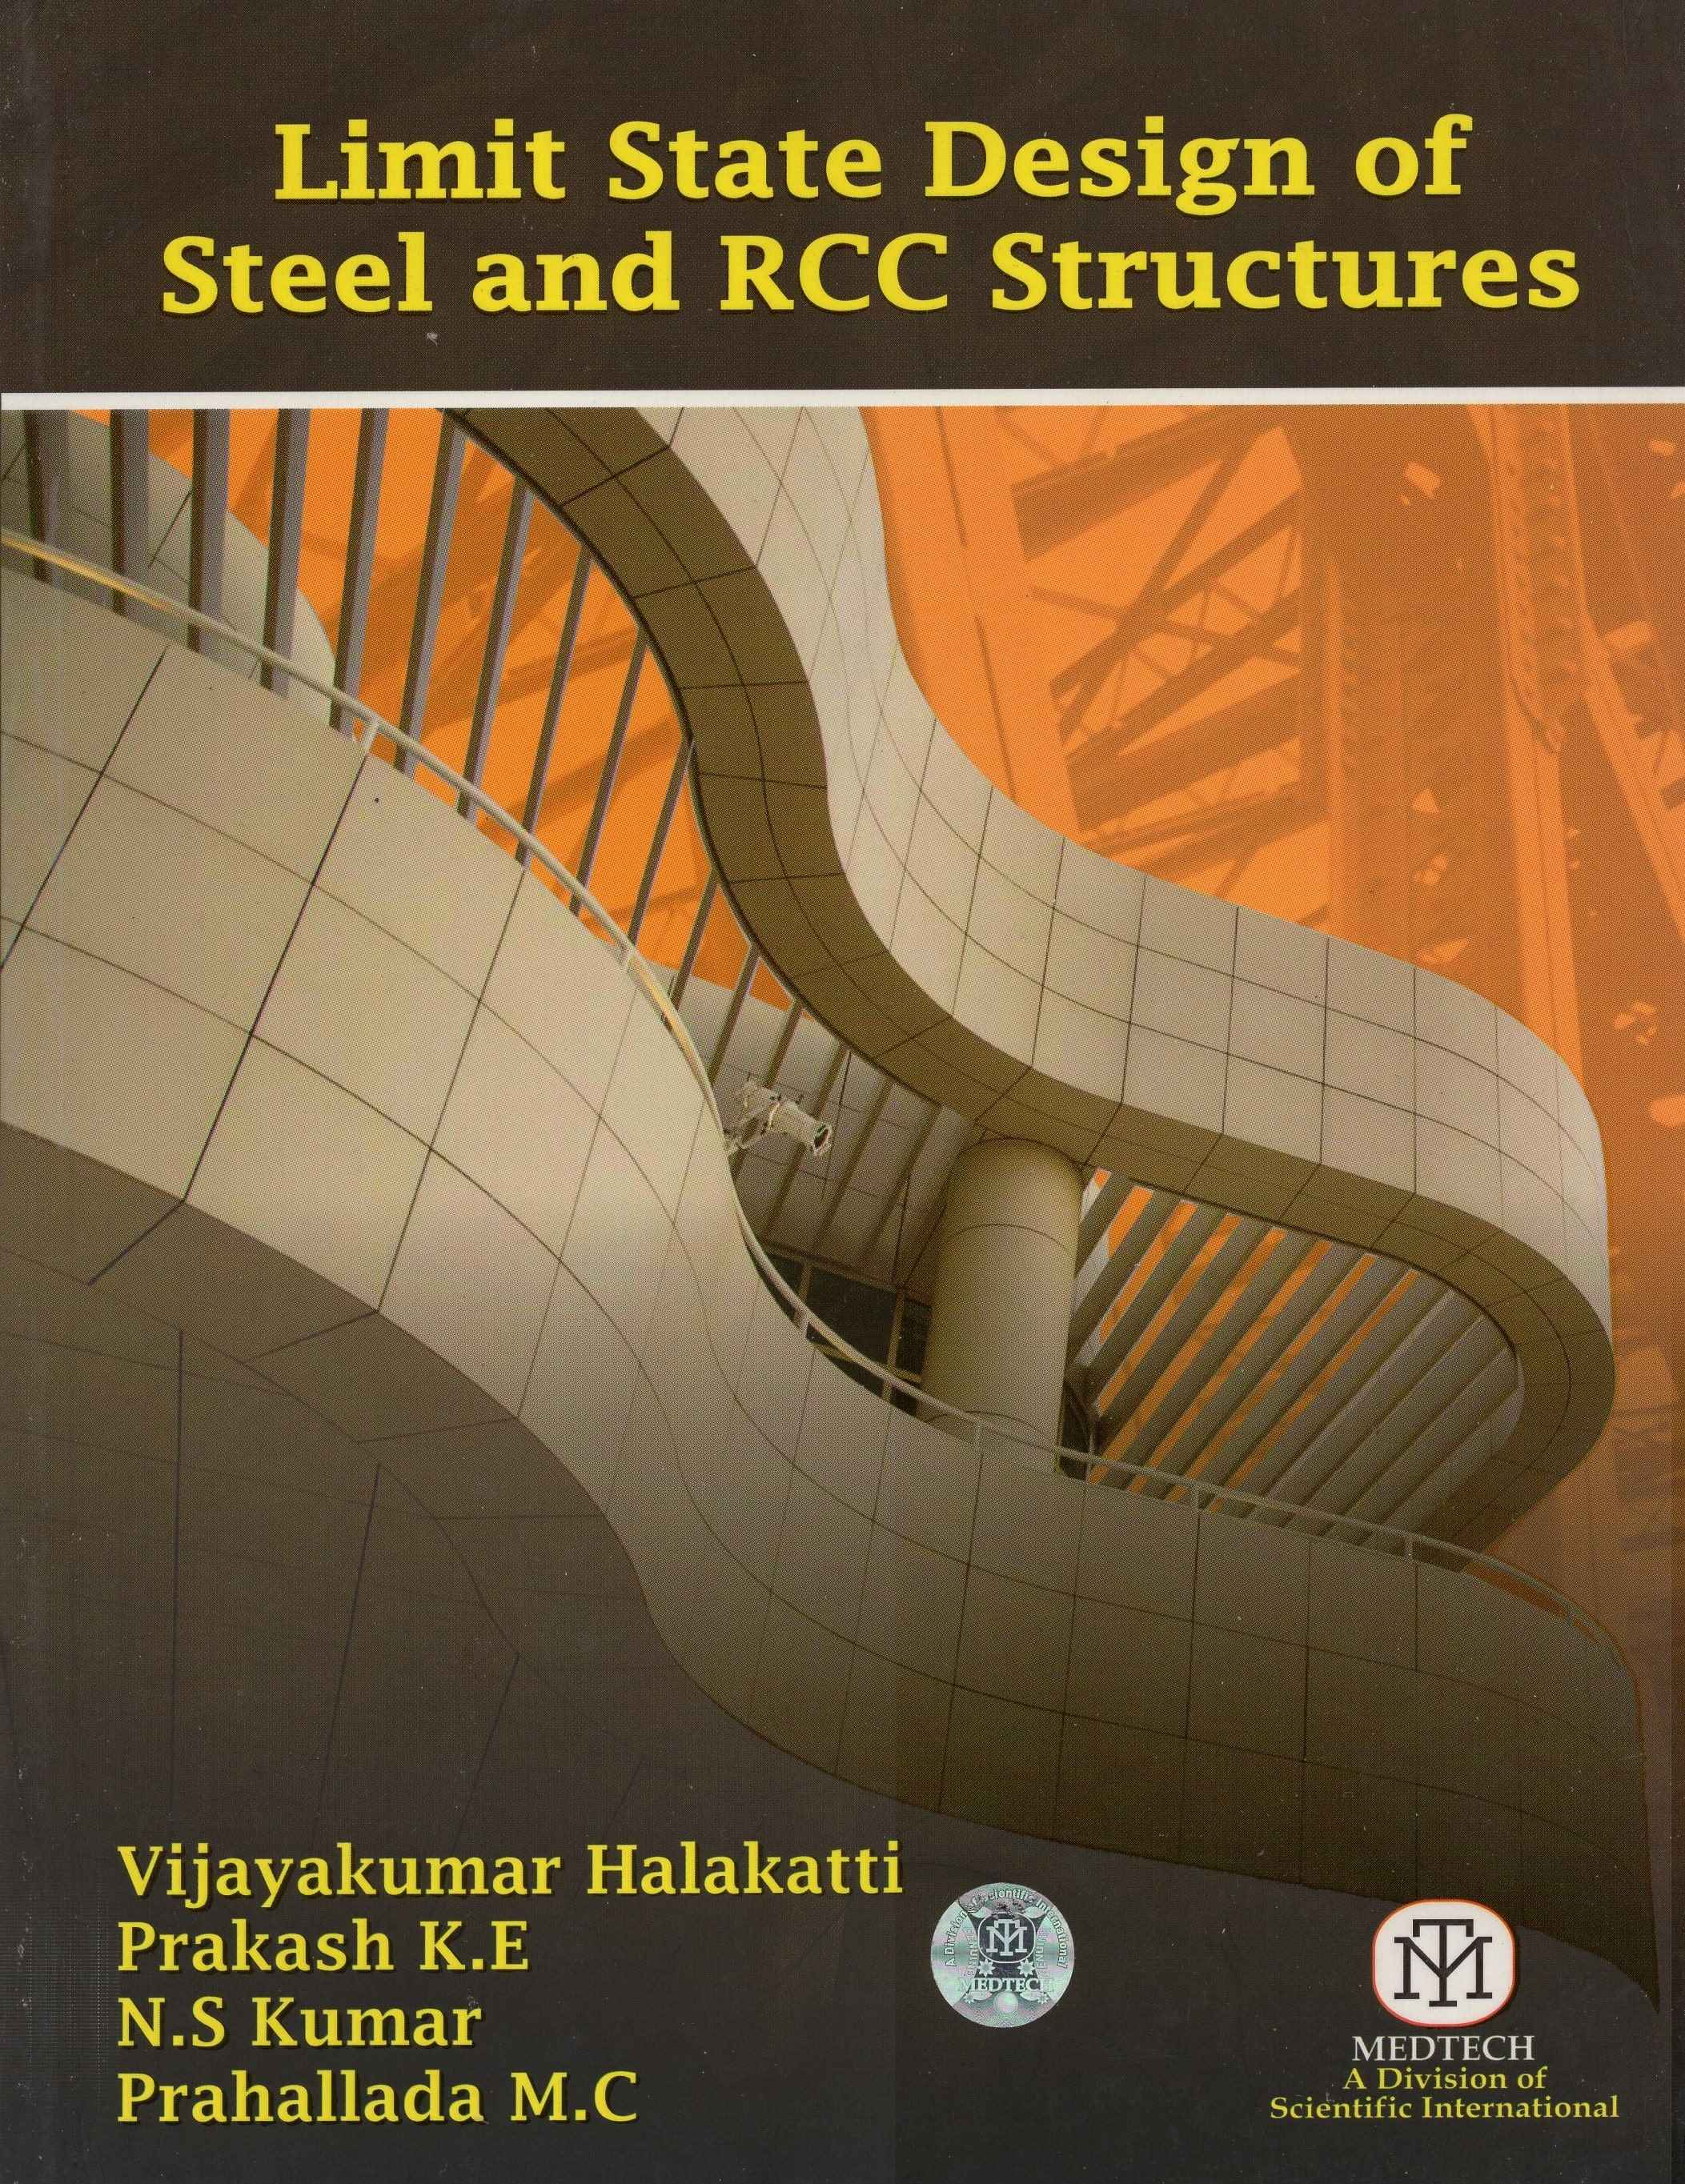 LIMIT STATE DESIGN OF STEEL AND RCC STRUCTURES